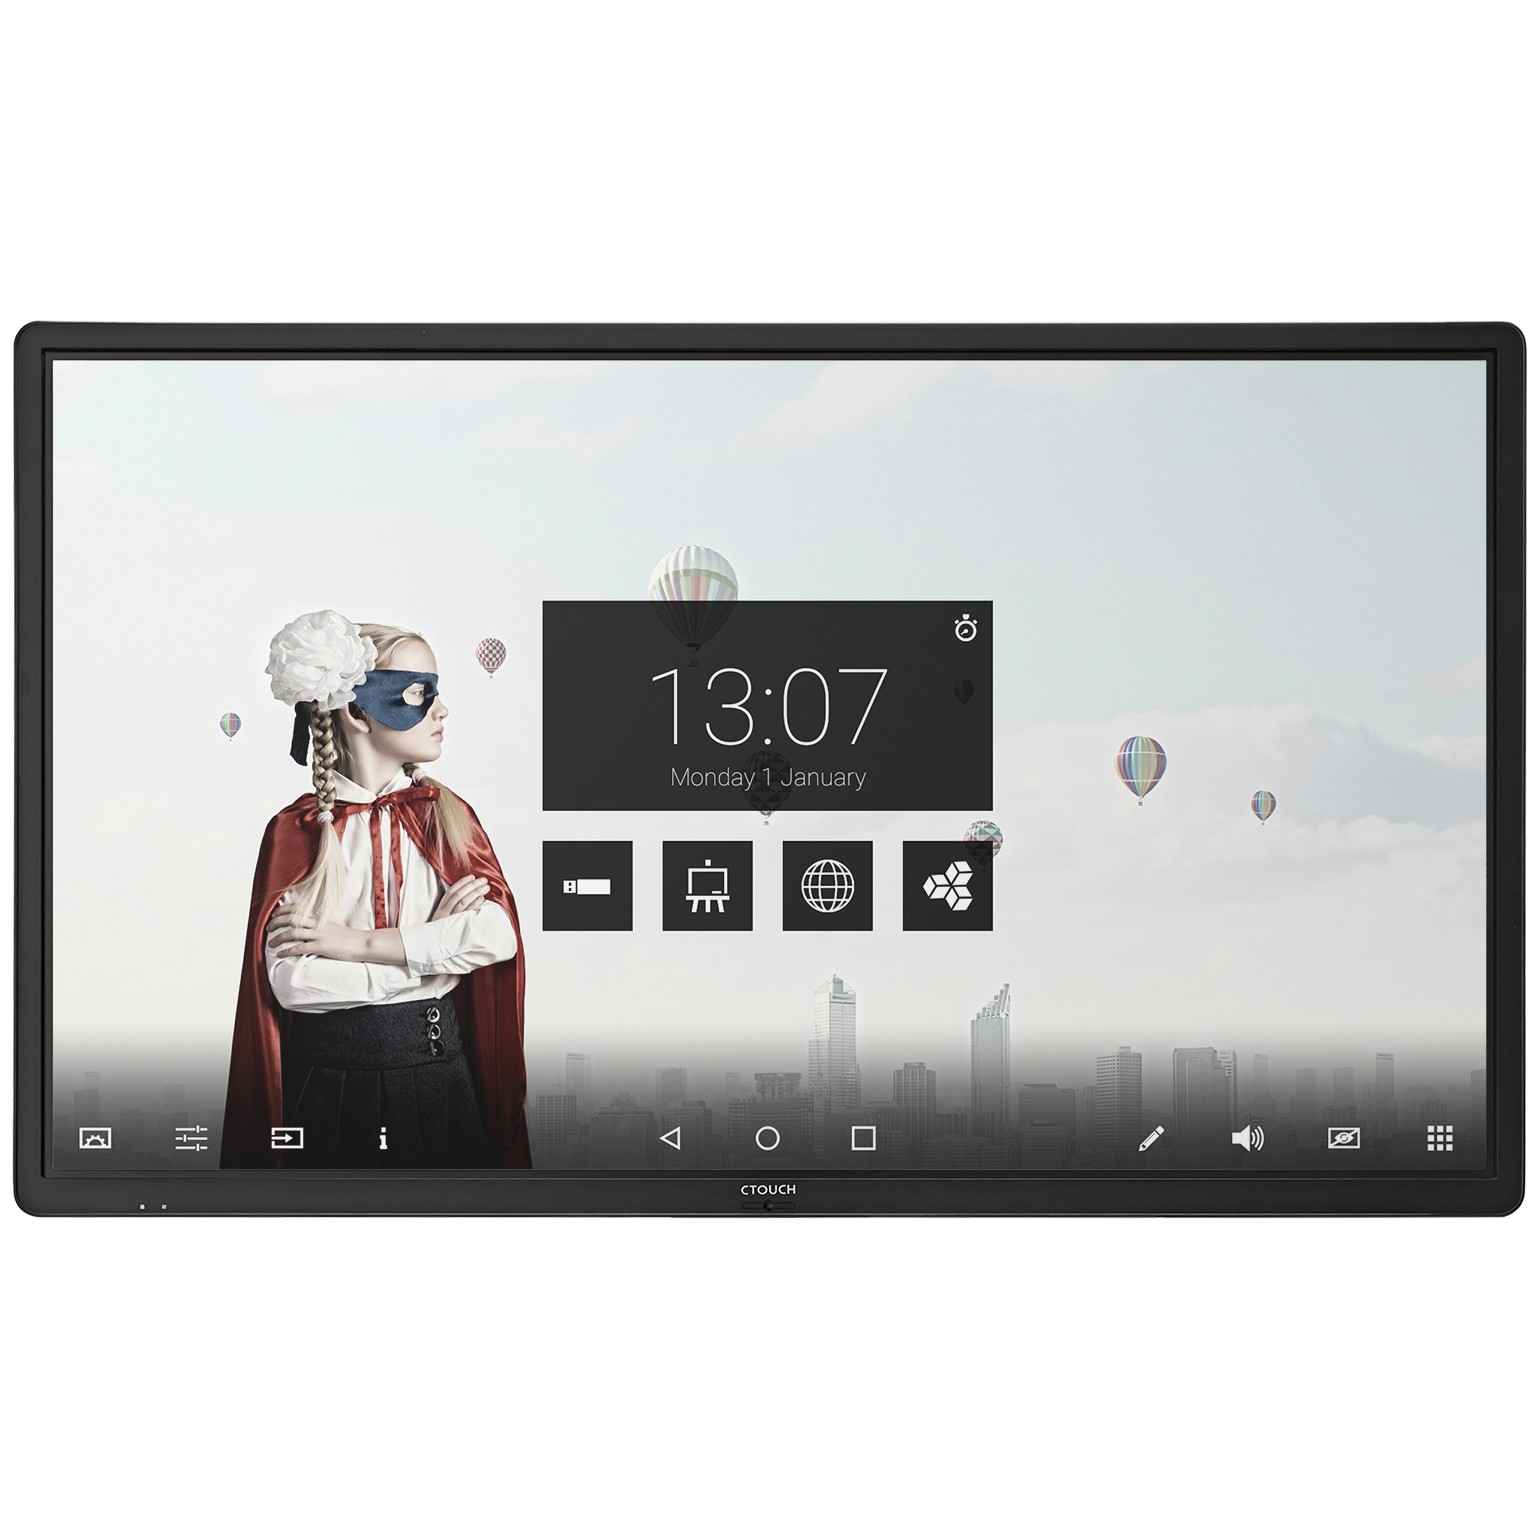 CTOUCH Laser Air+ 55 UHD